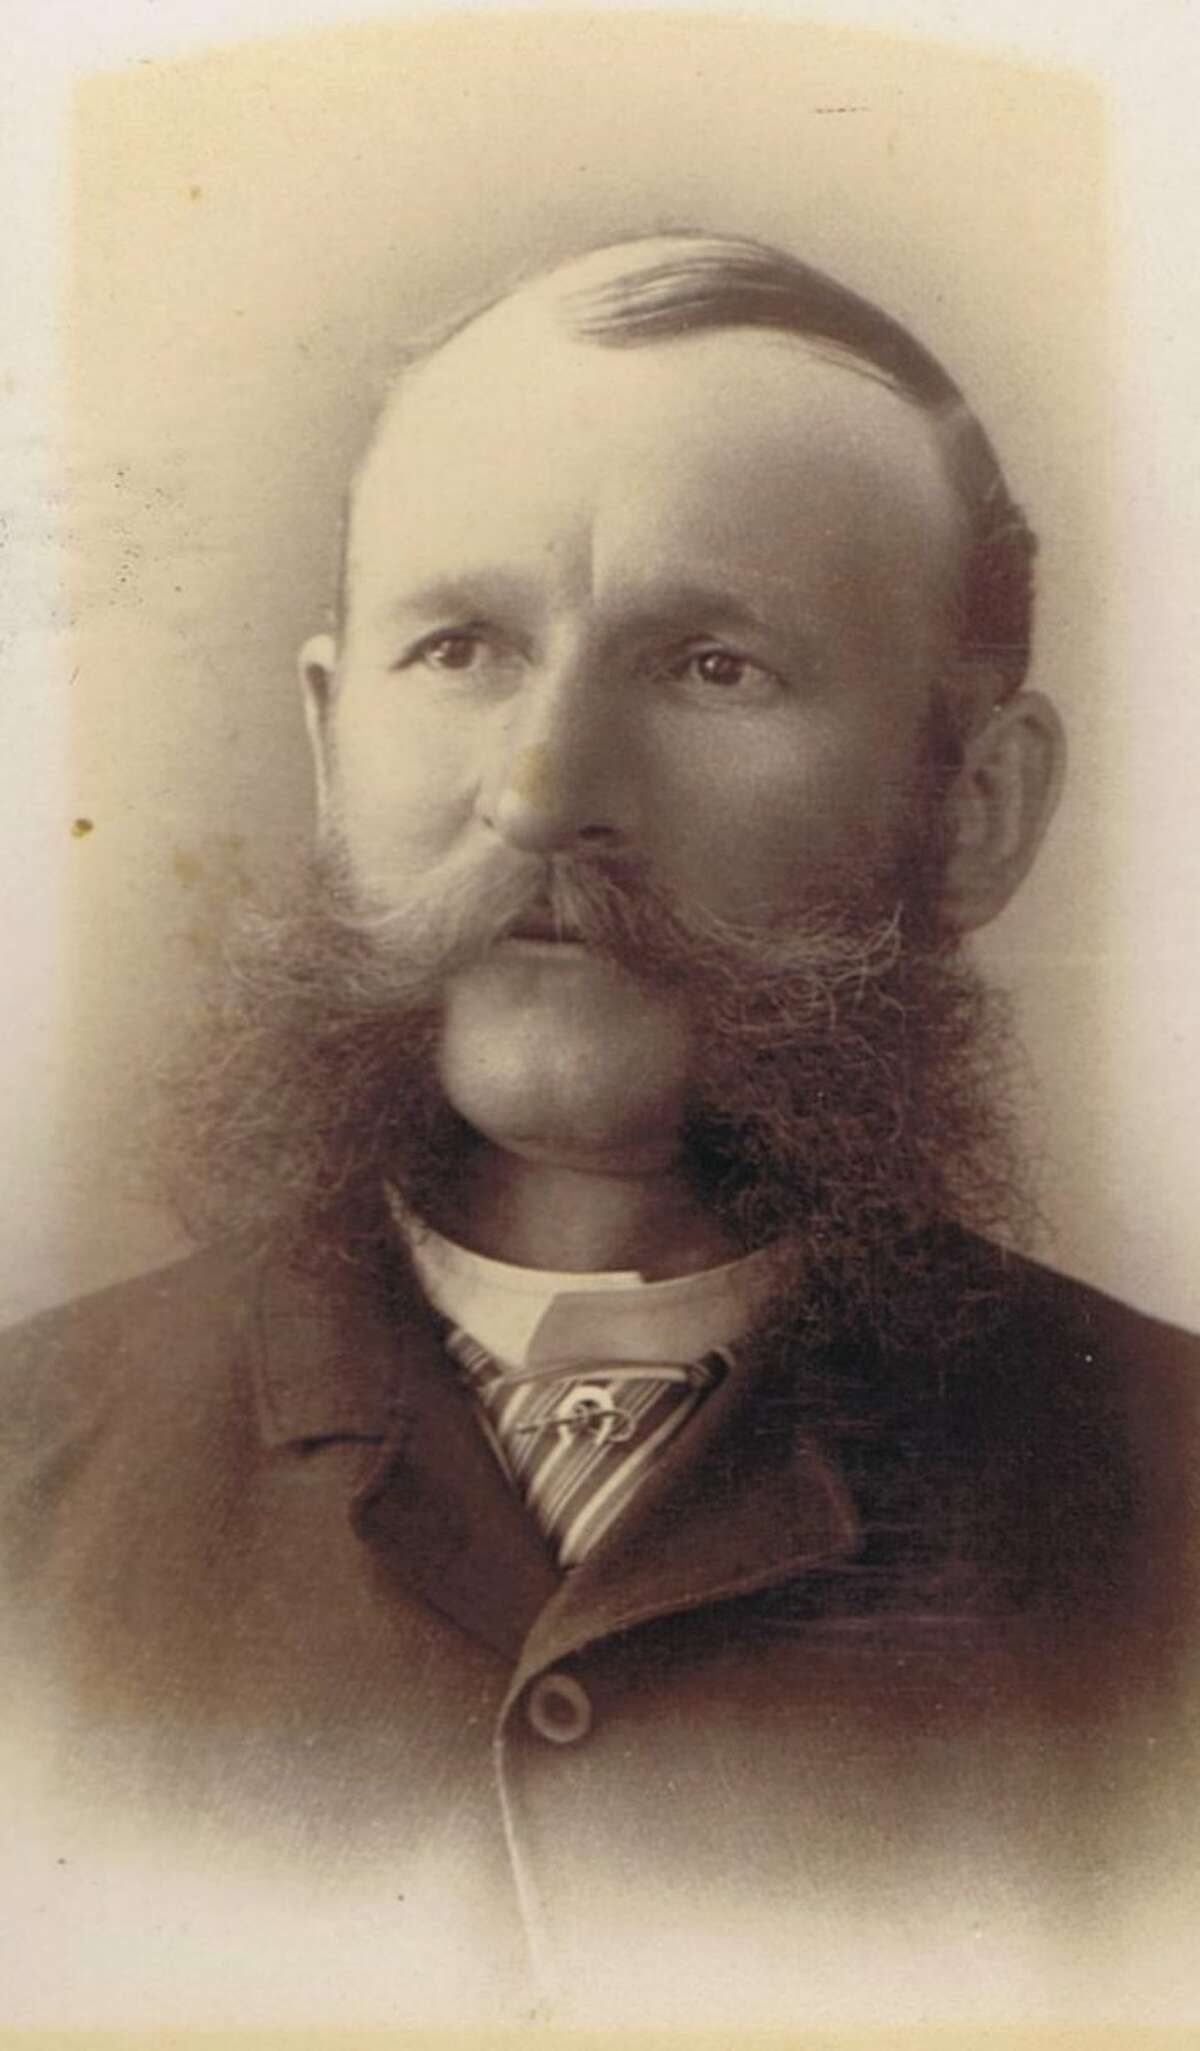 Great example of mutton chop/sideburn/mustache combo, ca. 1870's, from the collection of Bob Bragman